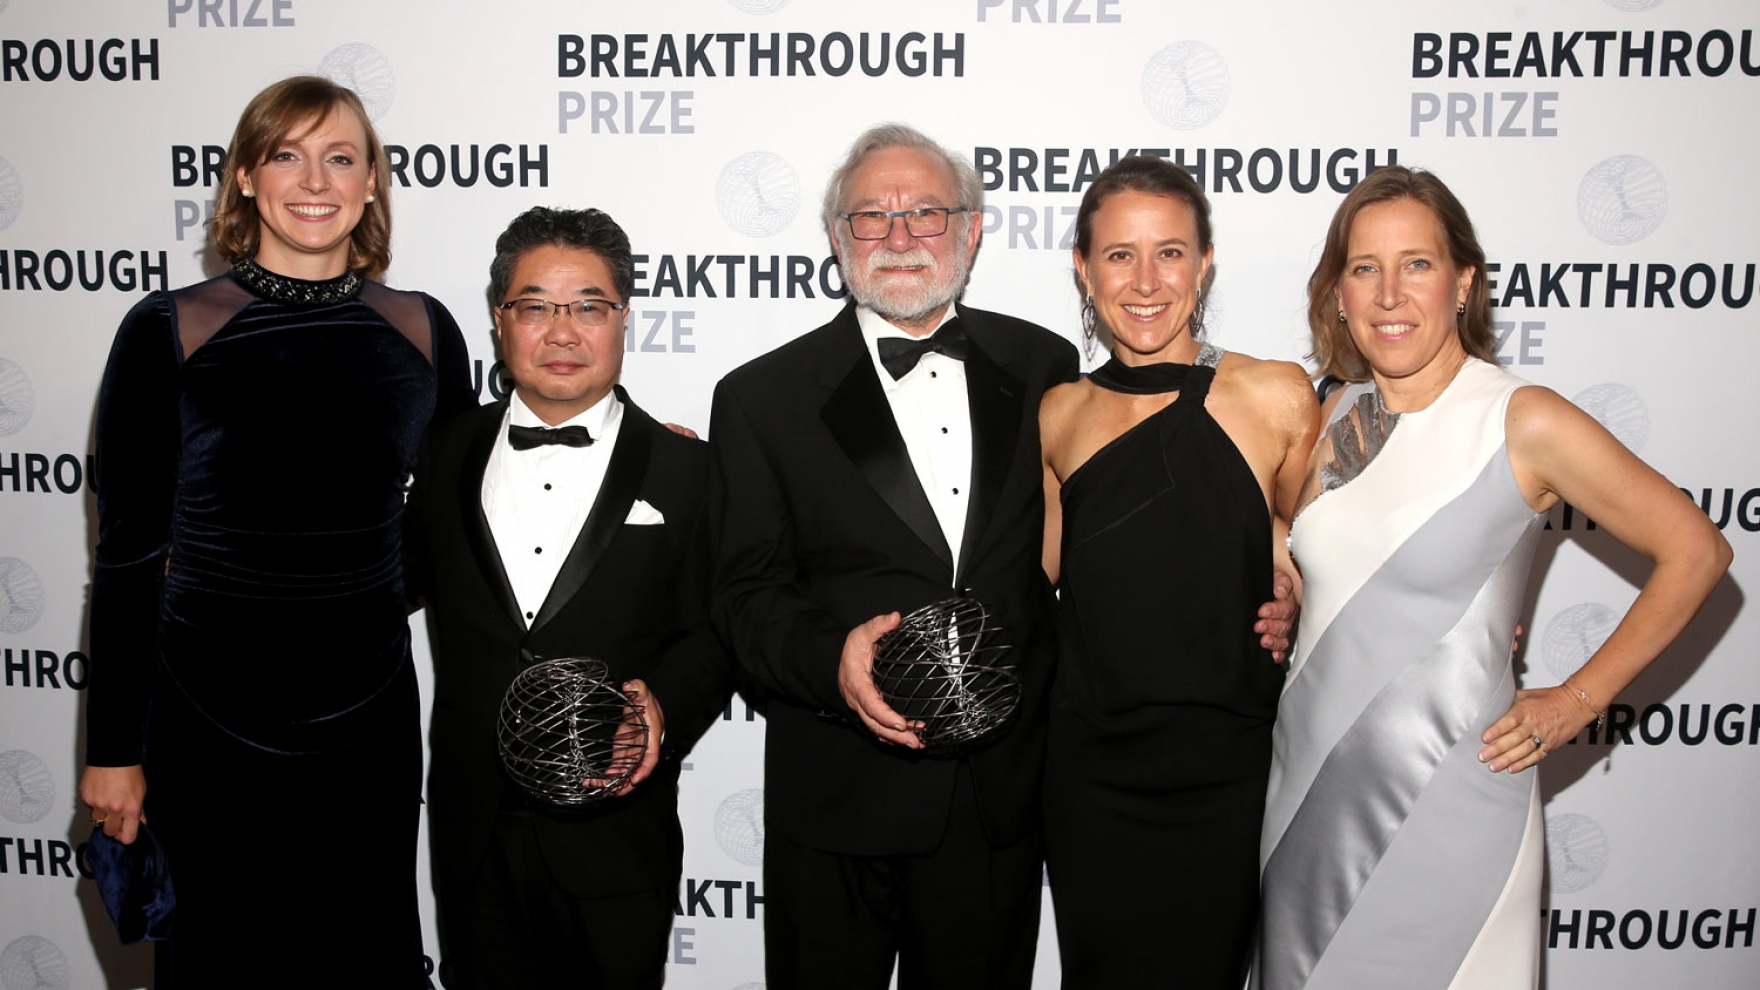 Katie Ledecky, Kasutoshi Mori, Peter Walter, Anne Wojcicki, and Susan Wojcicki on the red carpet at the Breakthrough Prize Ceremony